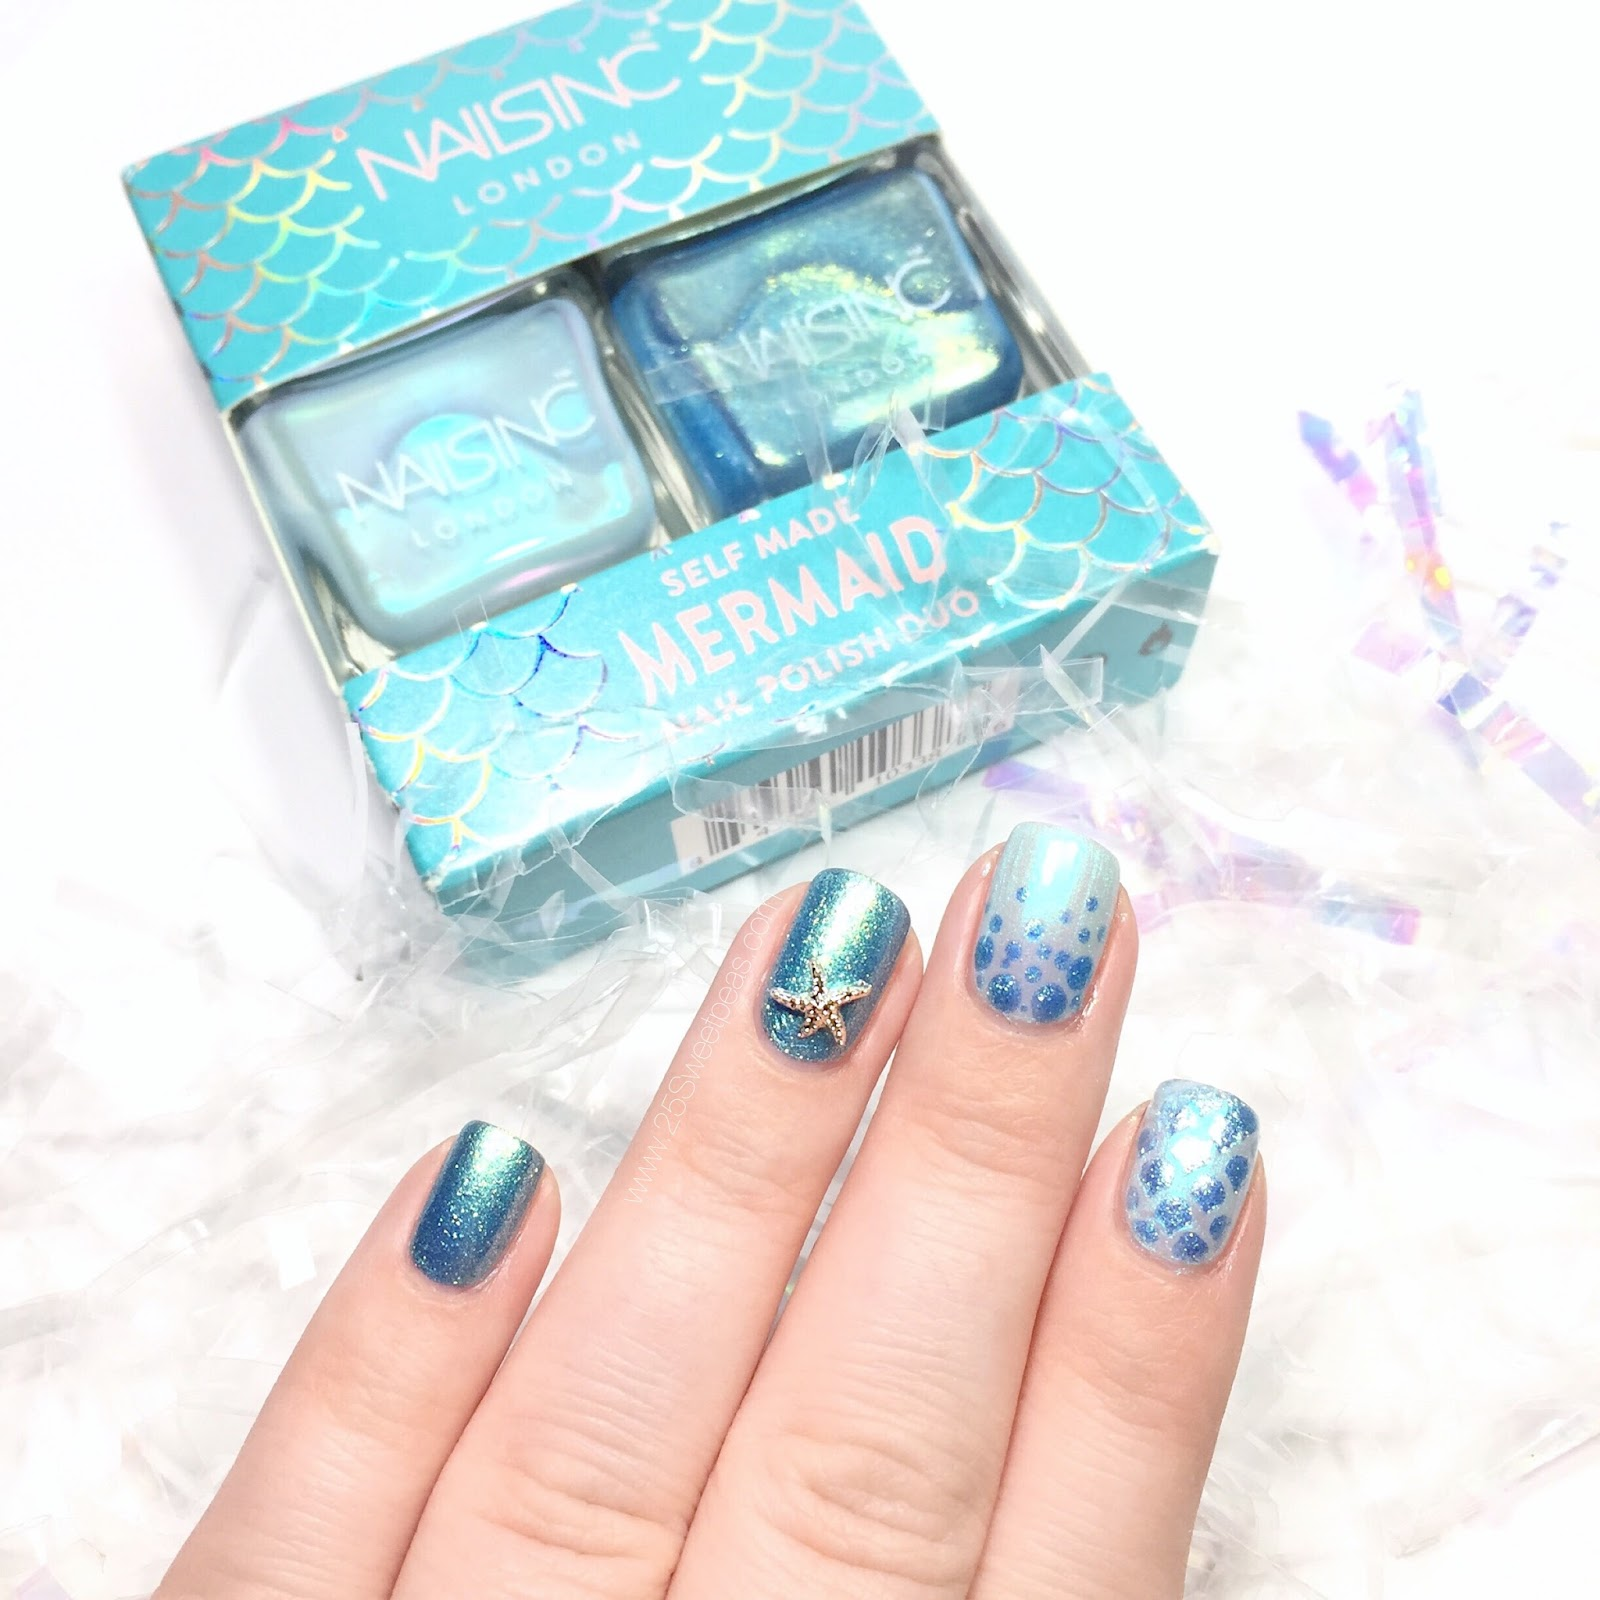 Nails Inc Self Made Mermaid Duo